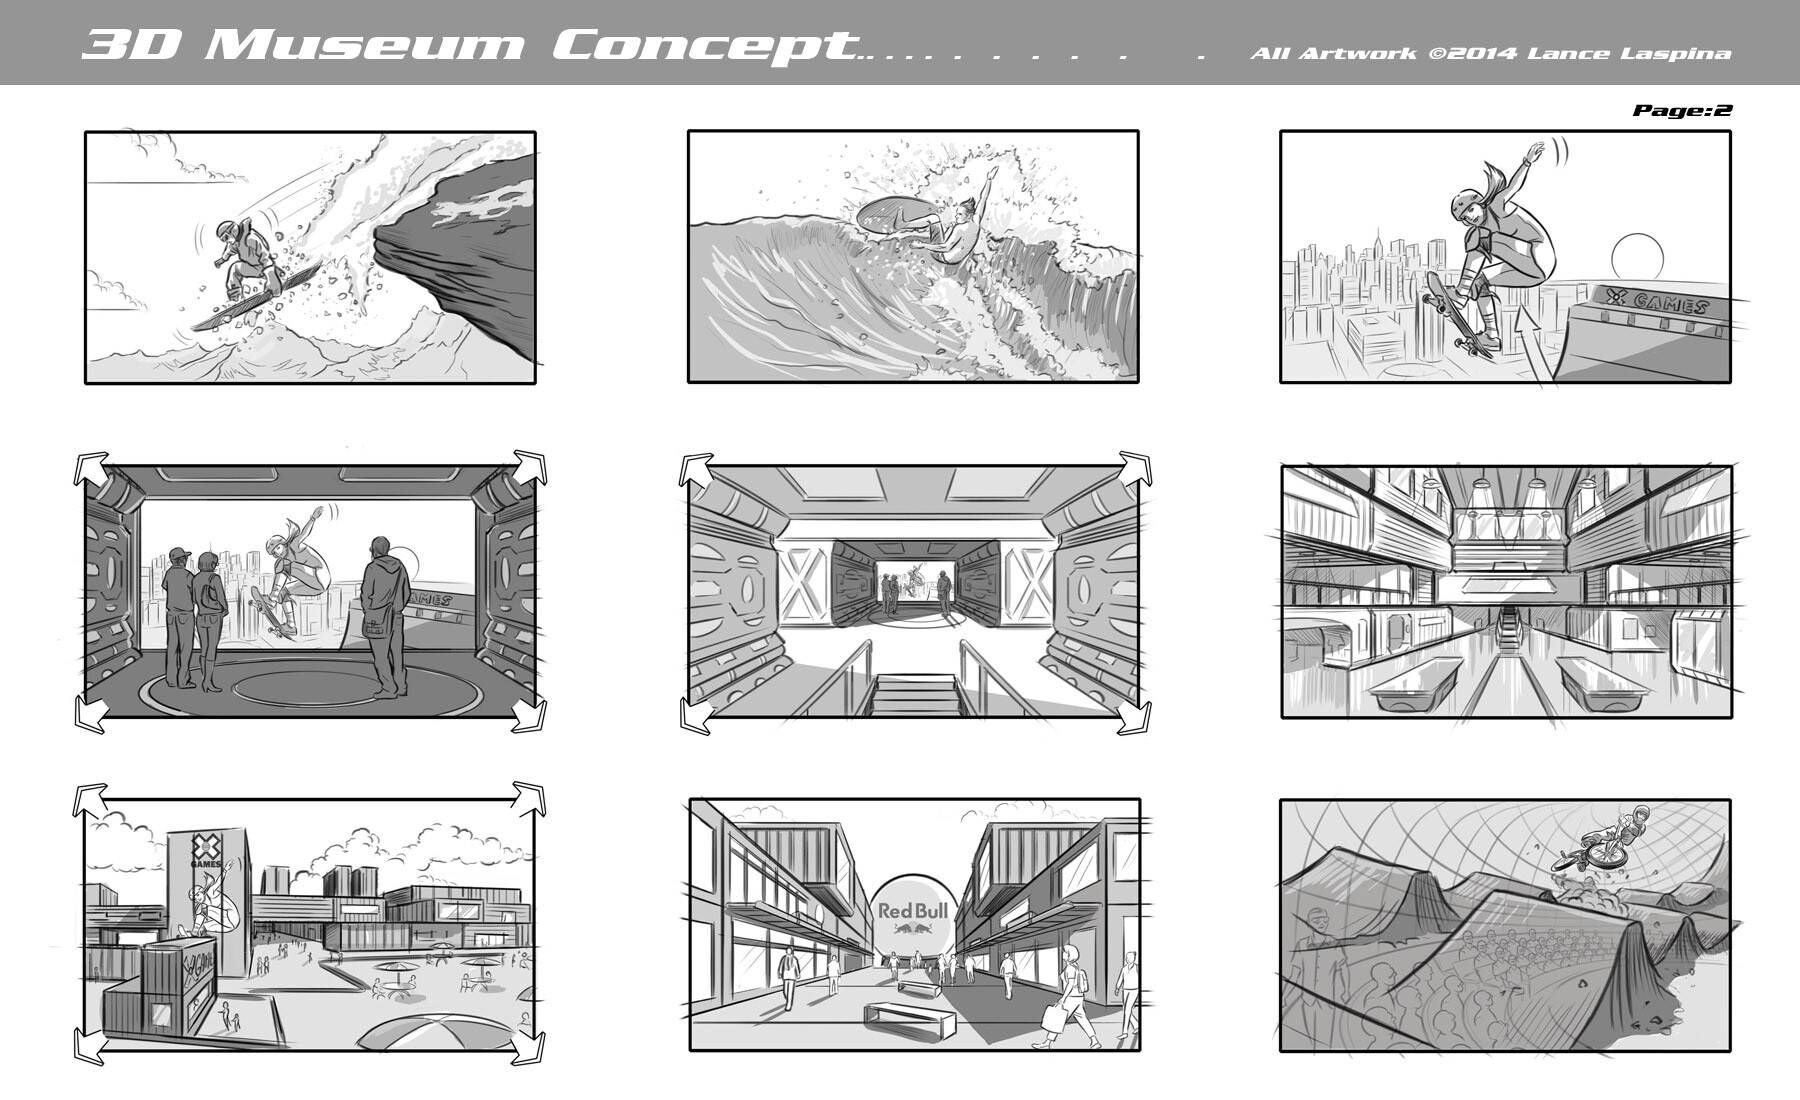 Lance laspina as storyboardsamples 11b